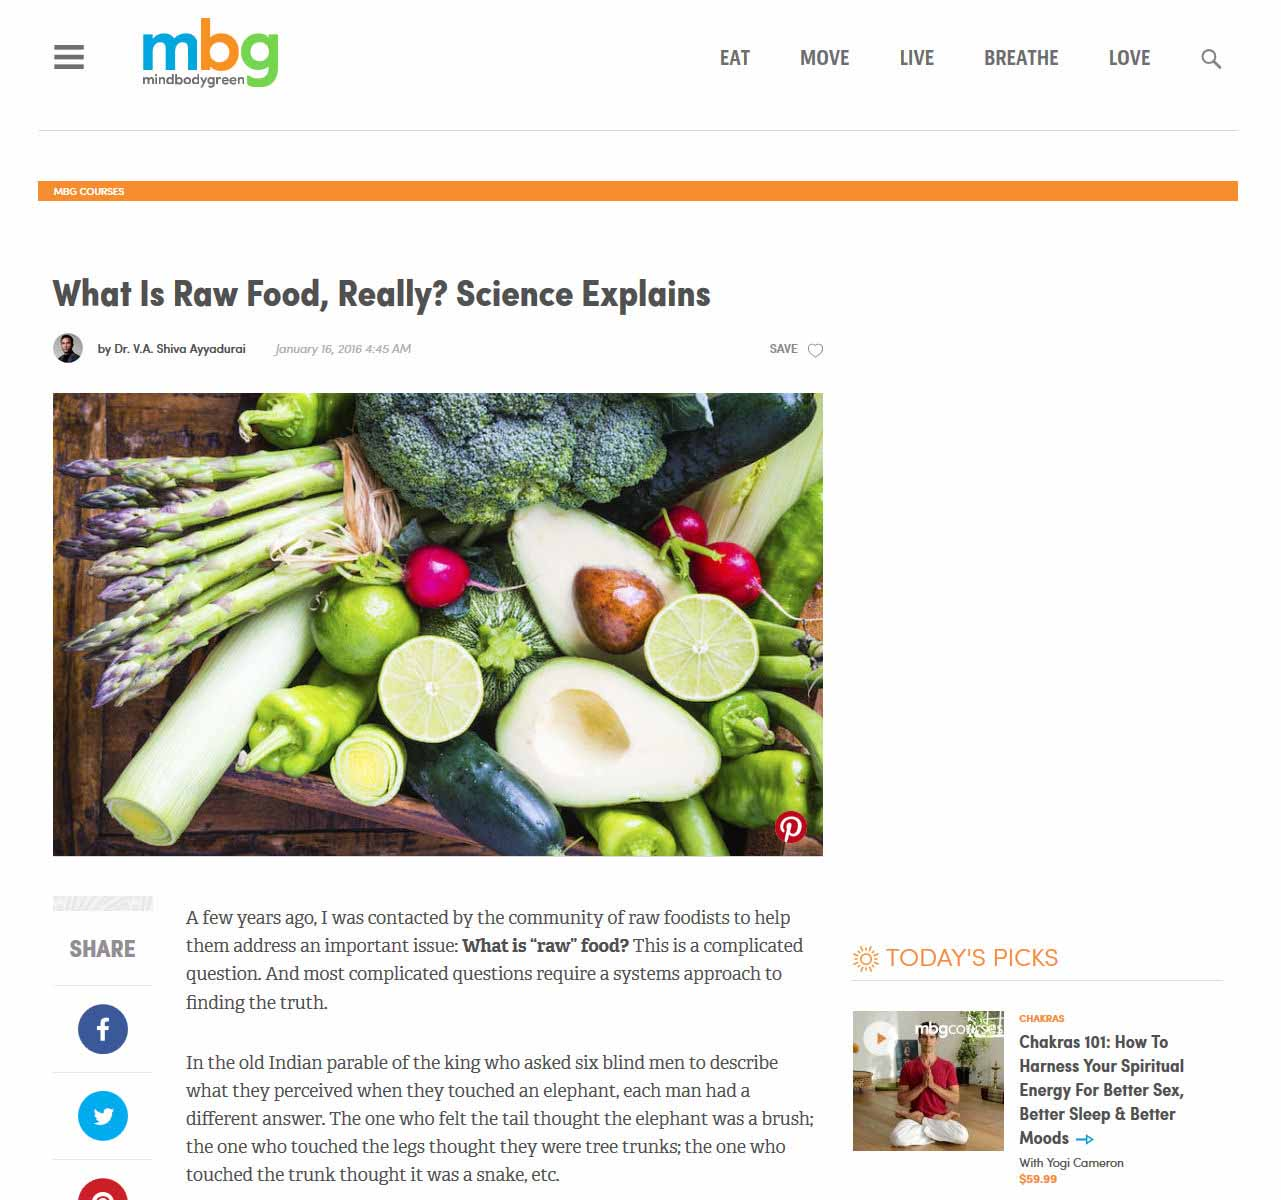 What Is Raw Food, Really? Science Explains